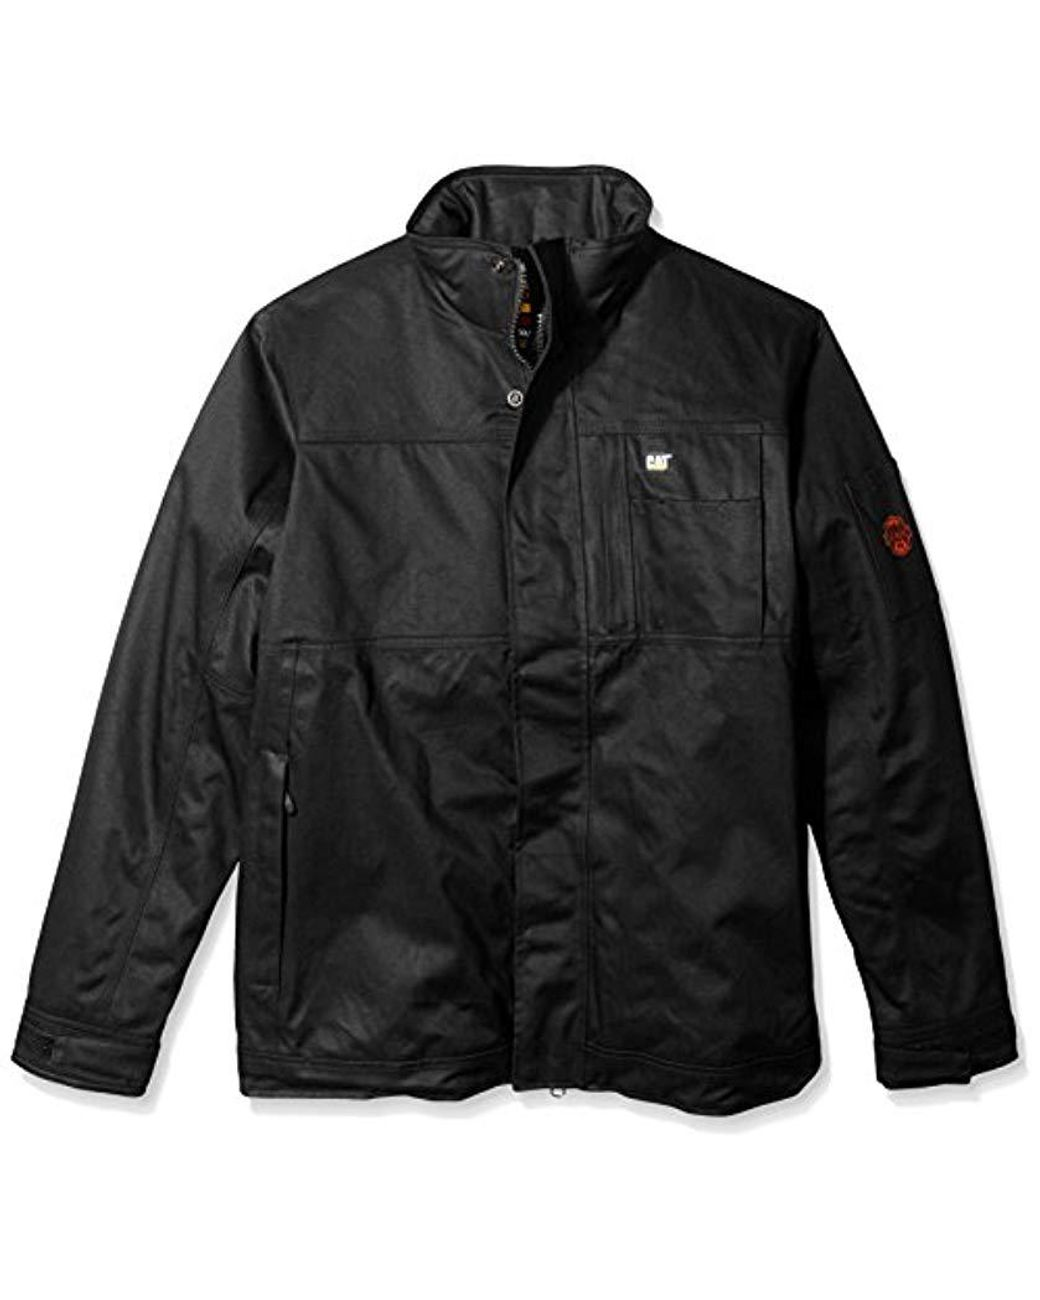 Mens Black Big And Tall Flame Resistant Insulated Jacket